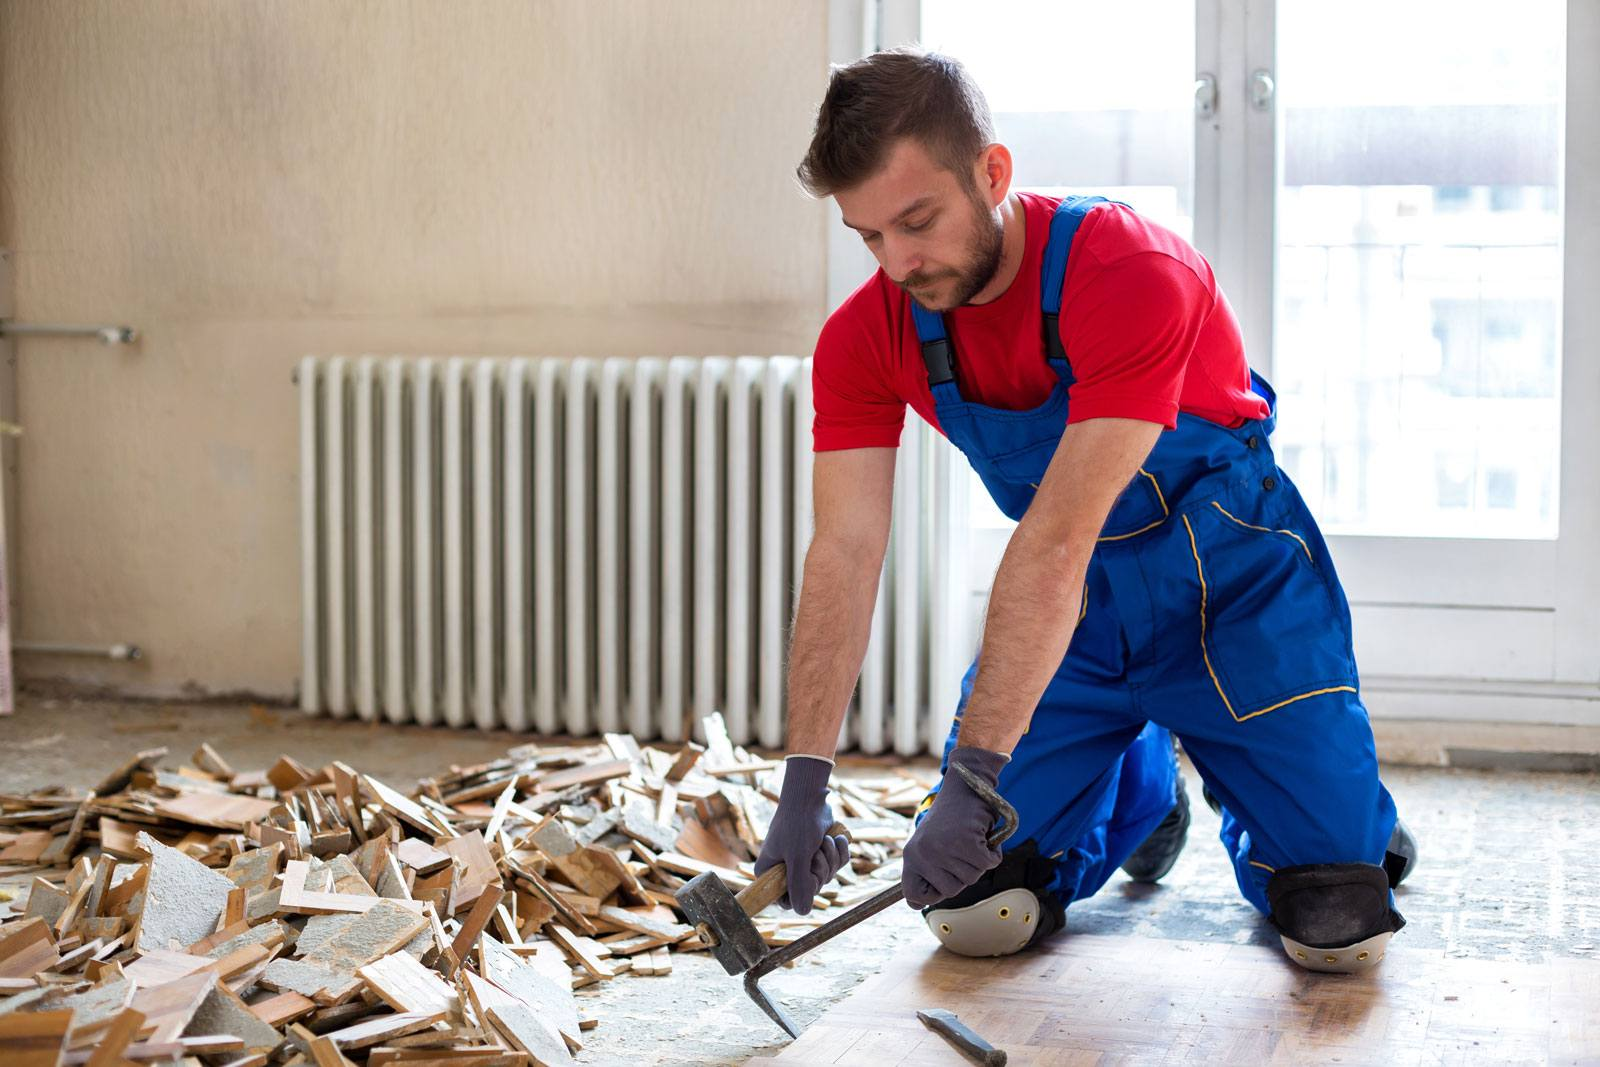 Let our team of professional post construction and remodeling cleaners take care of the heavy, dirty work with cleaning service hawthorn woods illinois